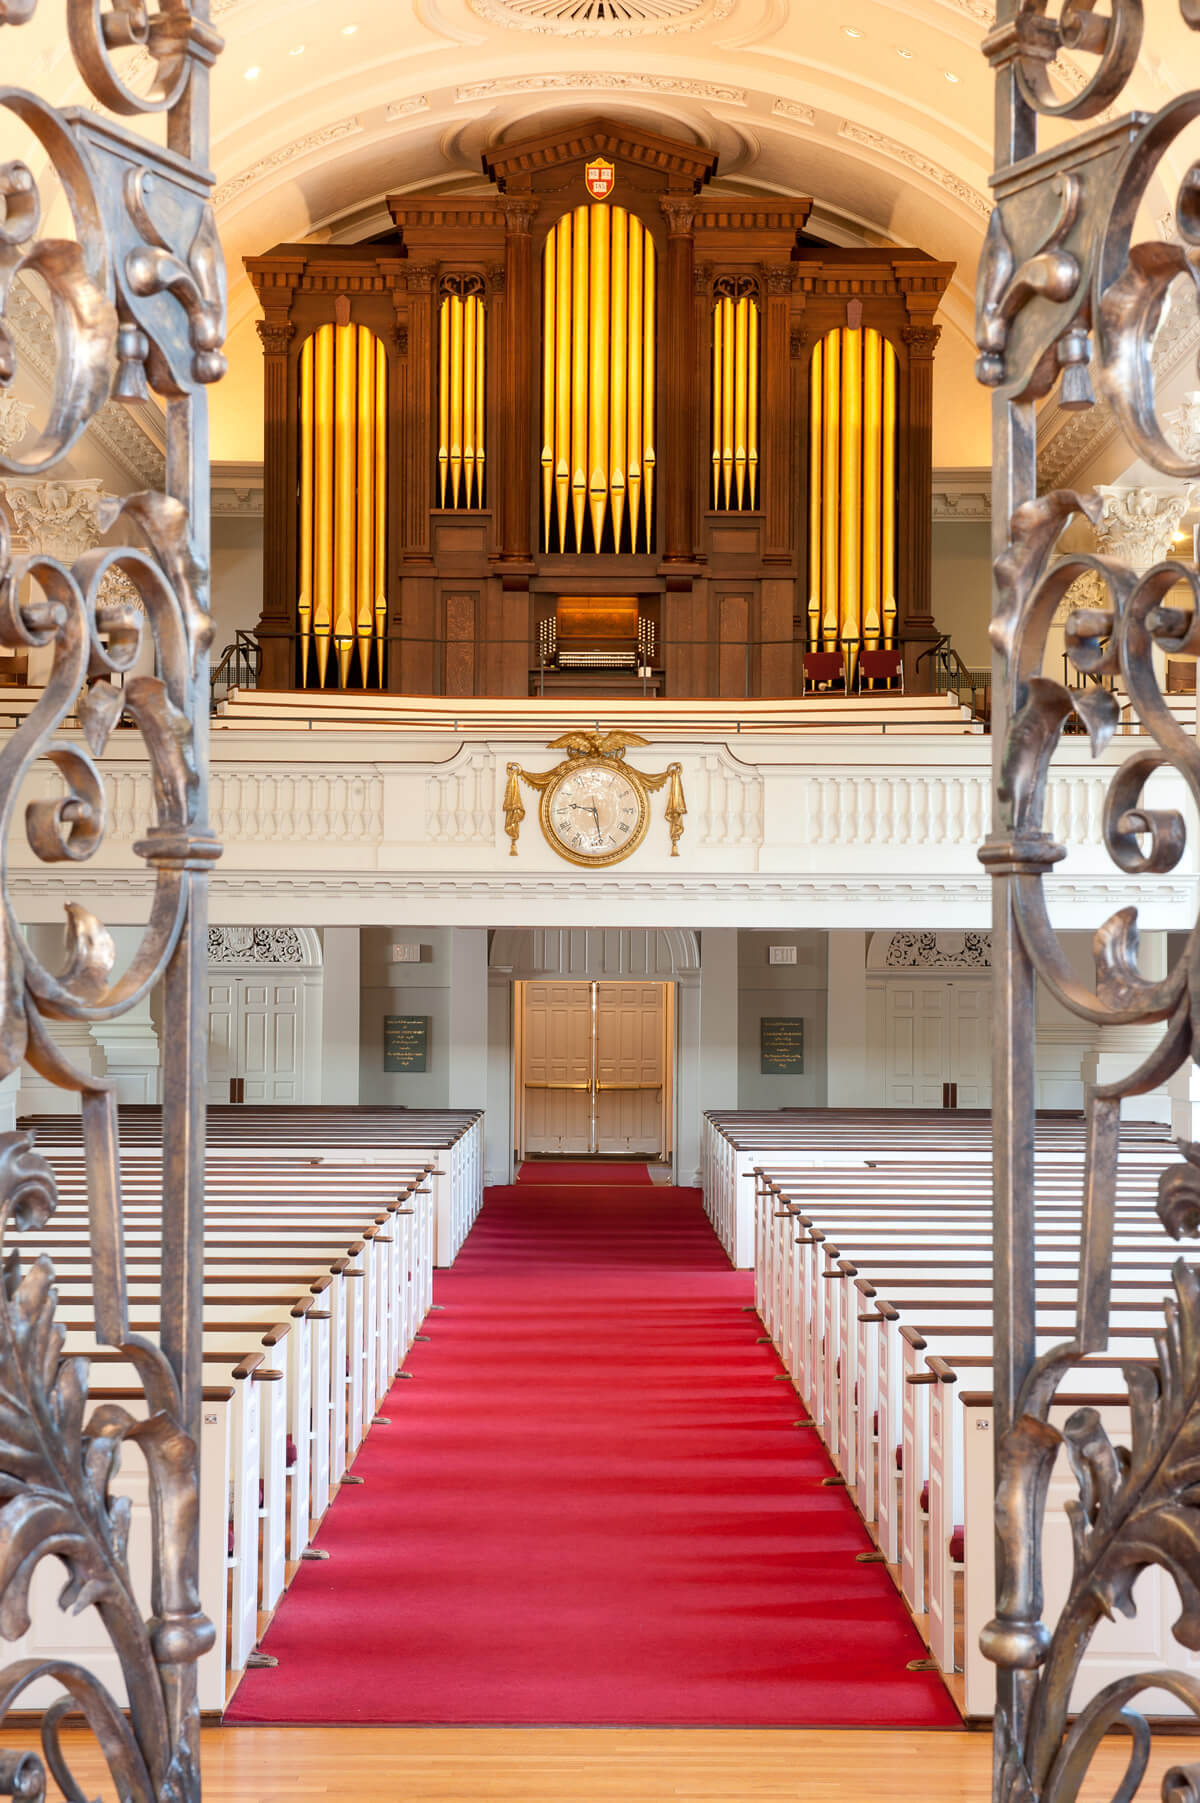 View onto the organ with white pews and red carpet in the foreground, framed by detailed metal gates.